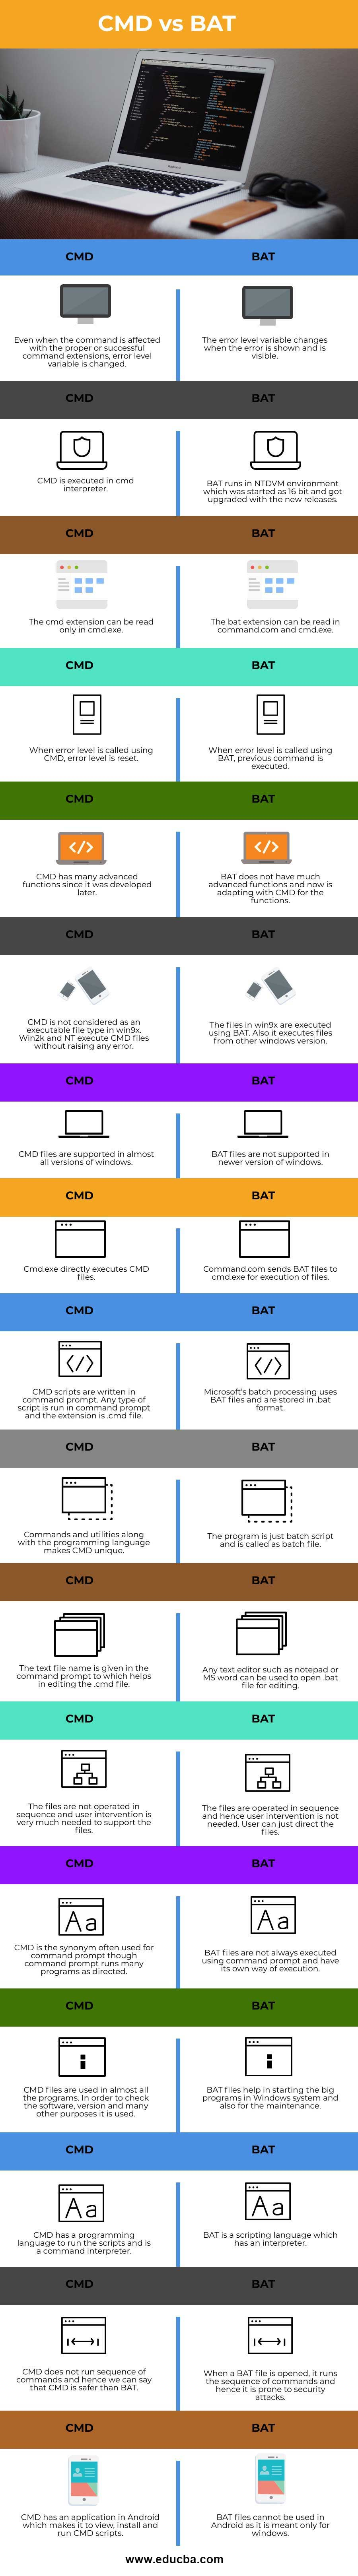 CMD-vs-BAT-info